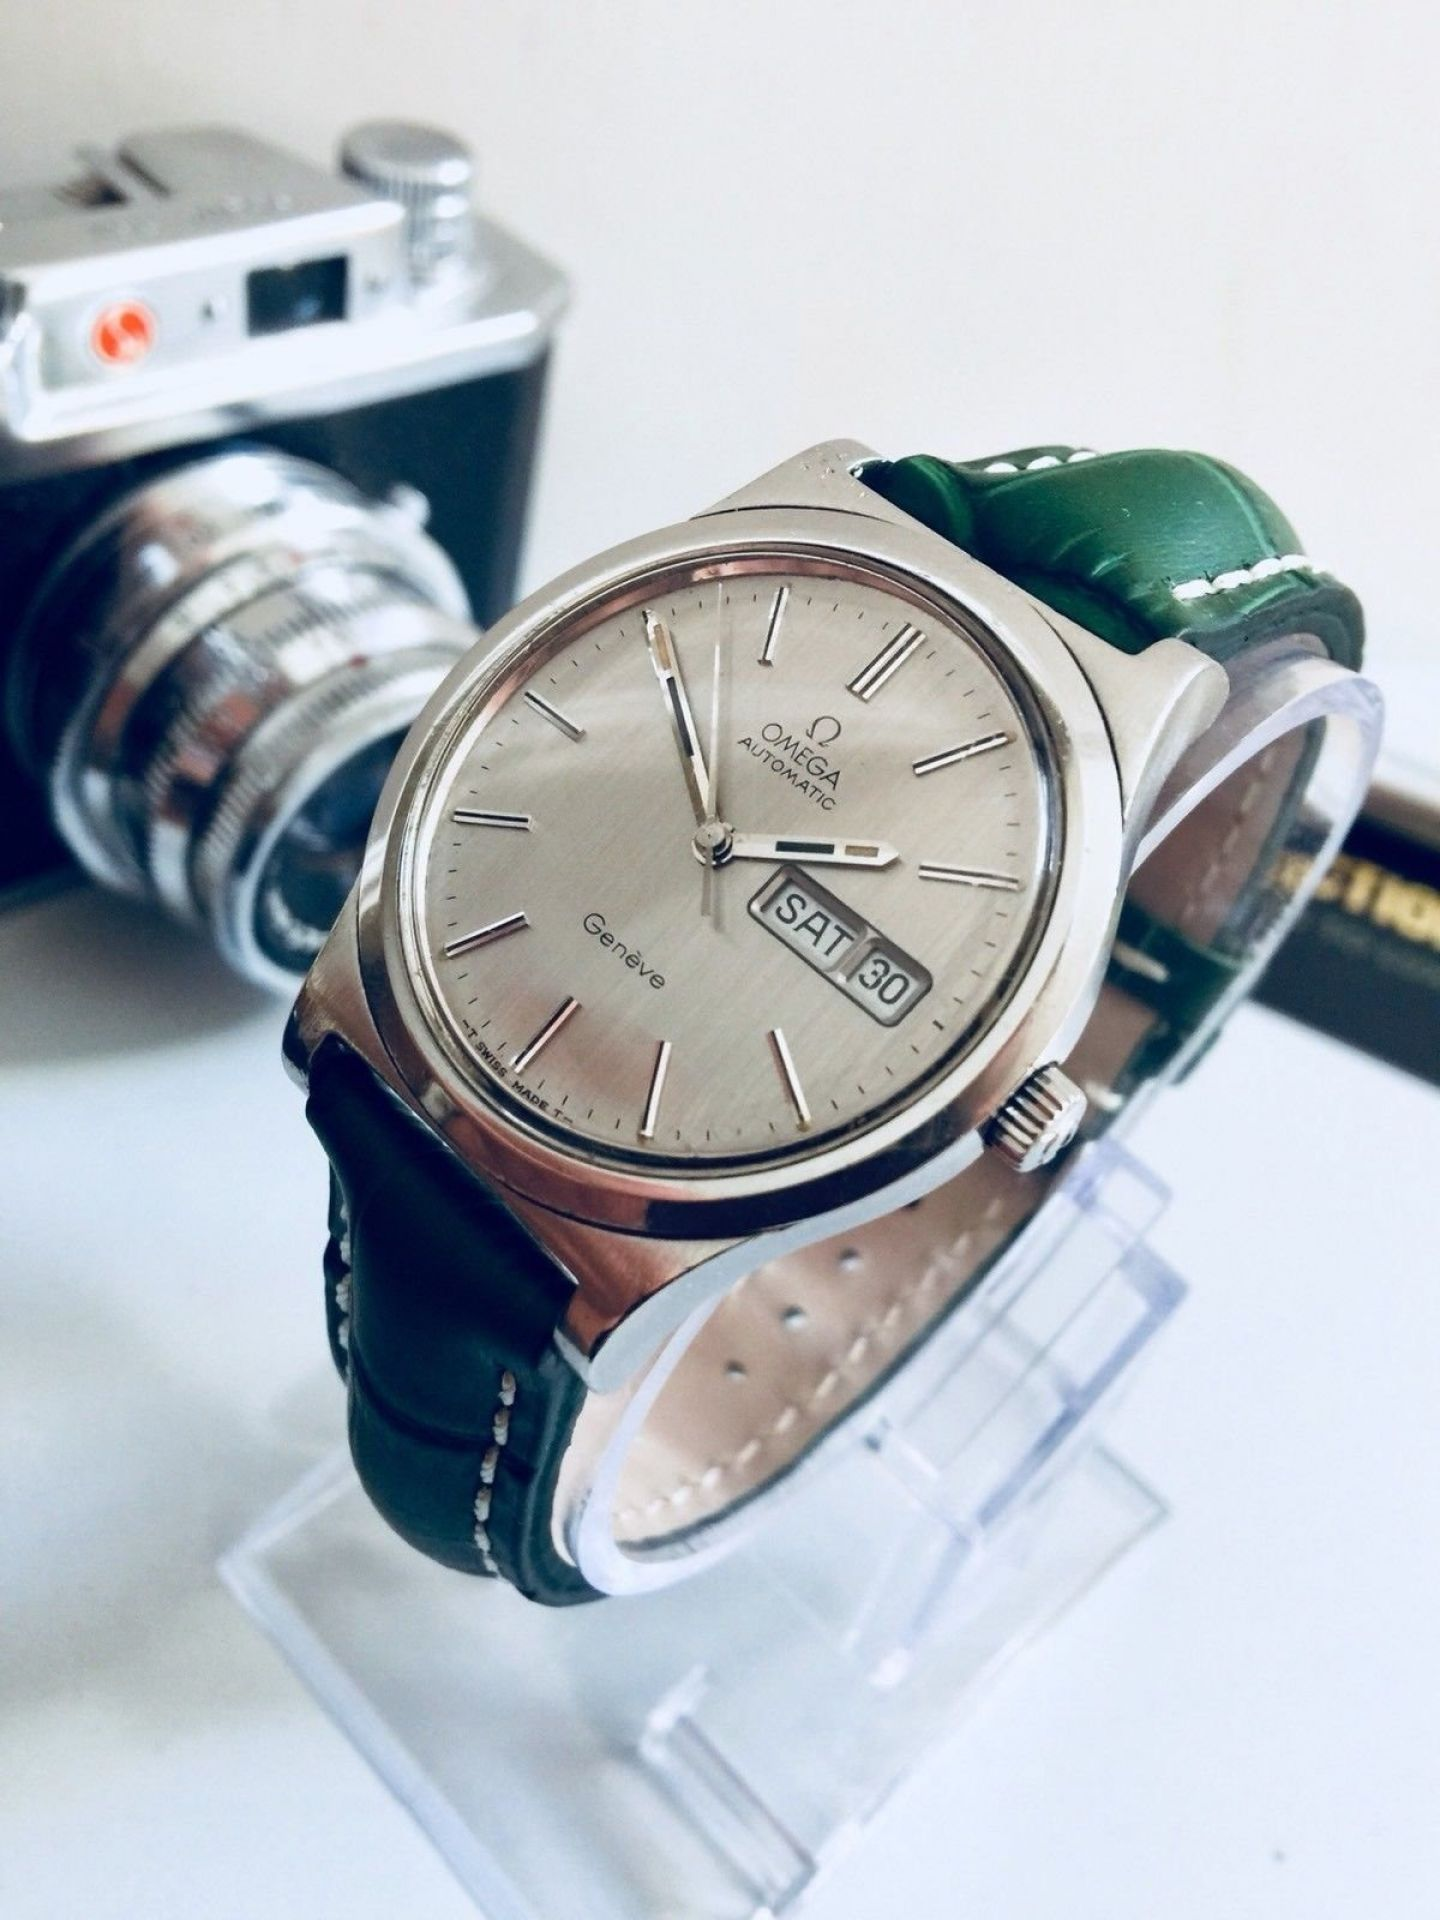 OMEGA VINTAGE RARE DAY DATE GENEVE CAL 1022 AUTOMATIC MECHANICAL WATCH GREEN